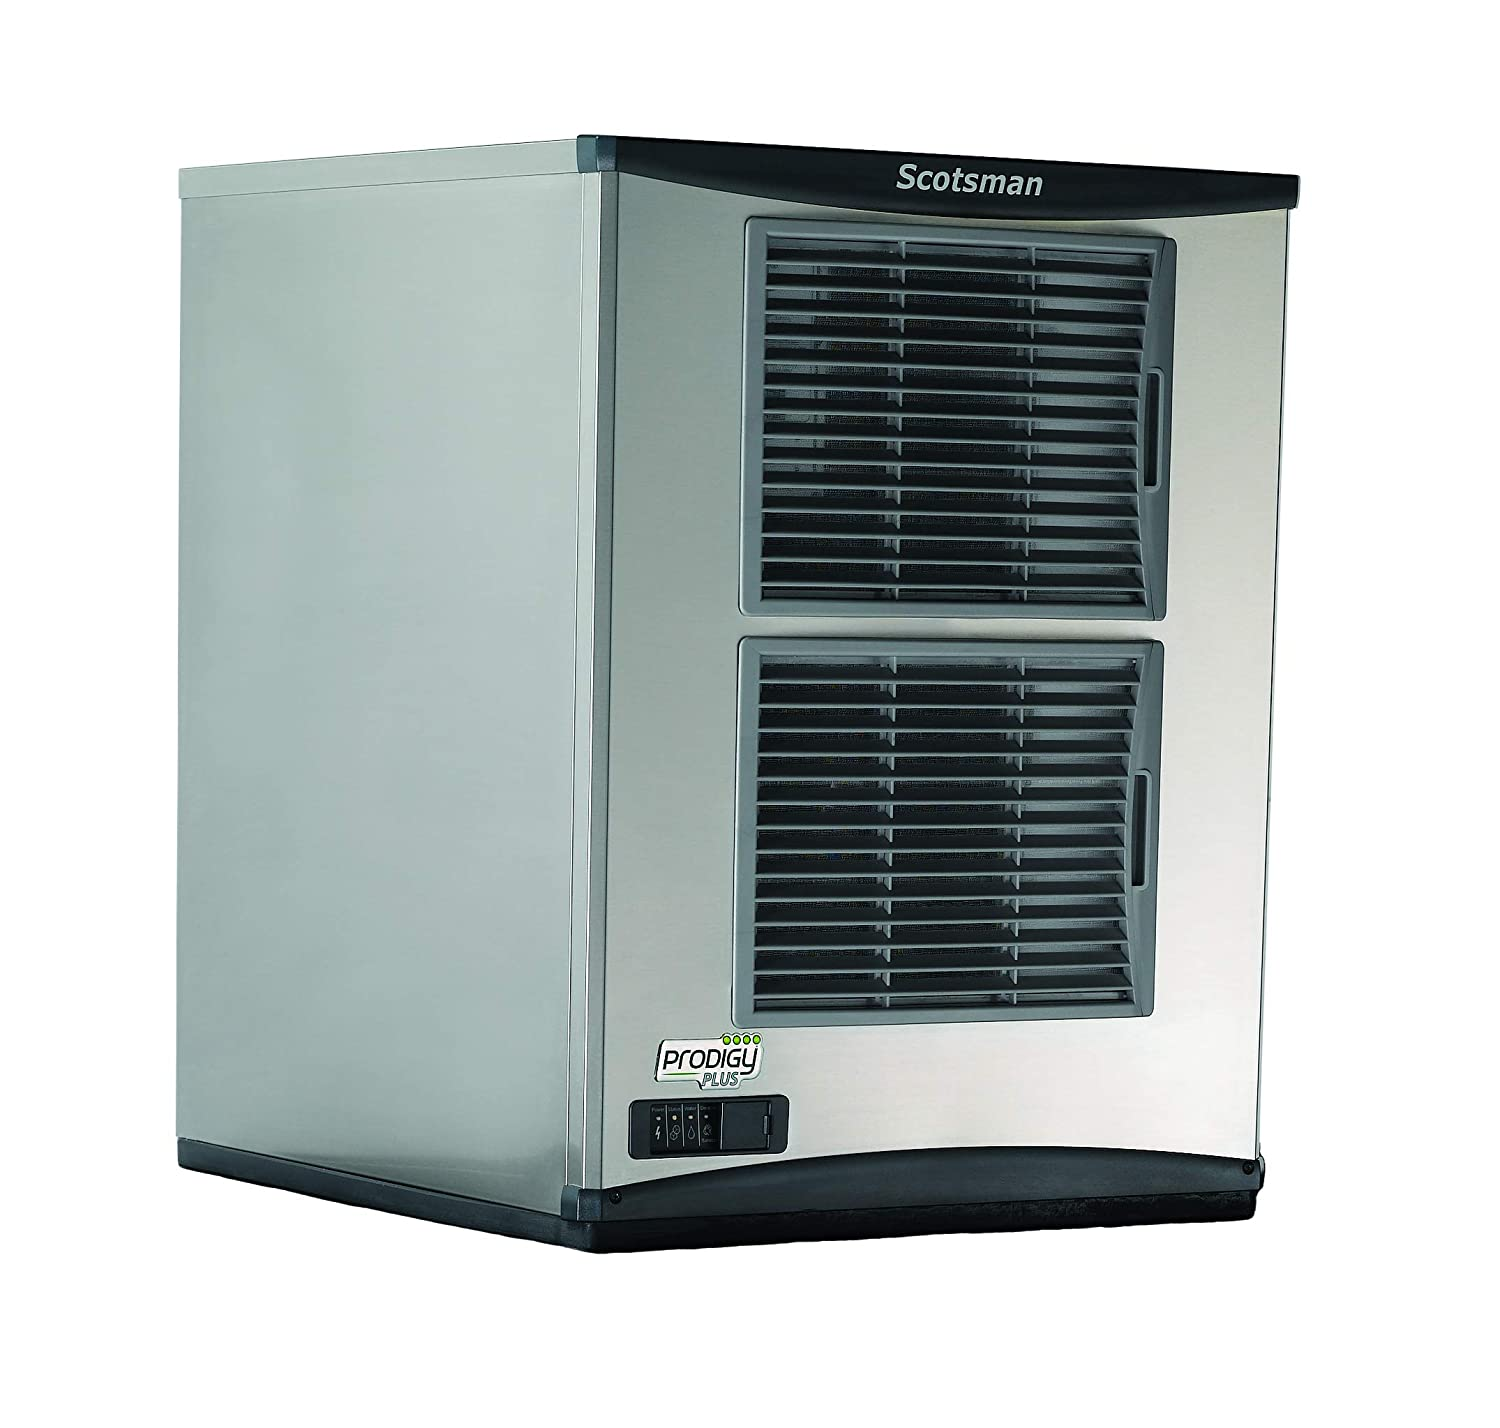 Scotsman N1322W-32 23-Inch Prodigy Plus Water-Cooled Nugget Ice Maker Machine, 1513 lbs/day, 208/230v, NSF